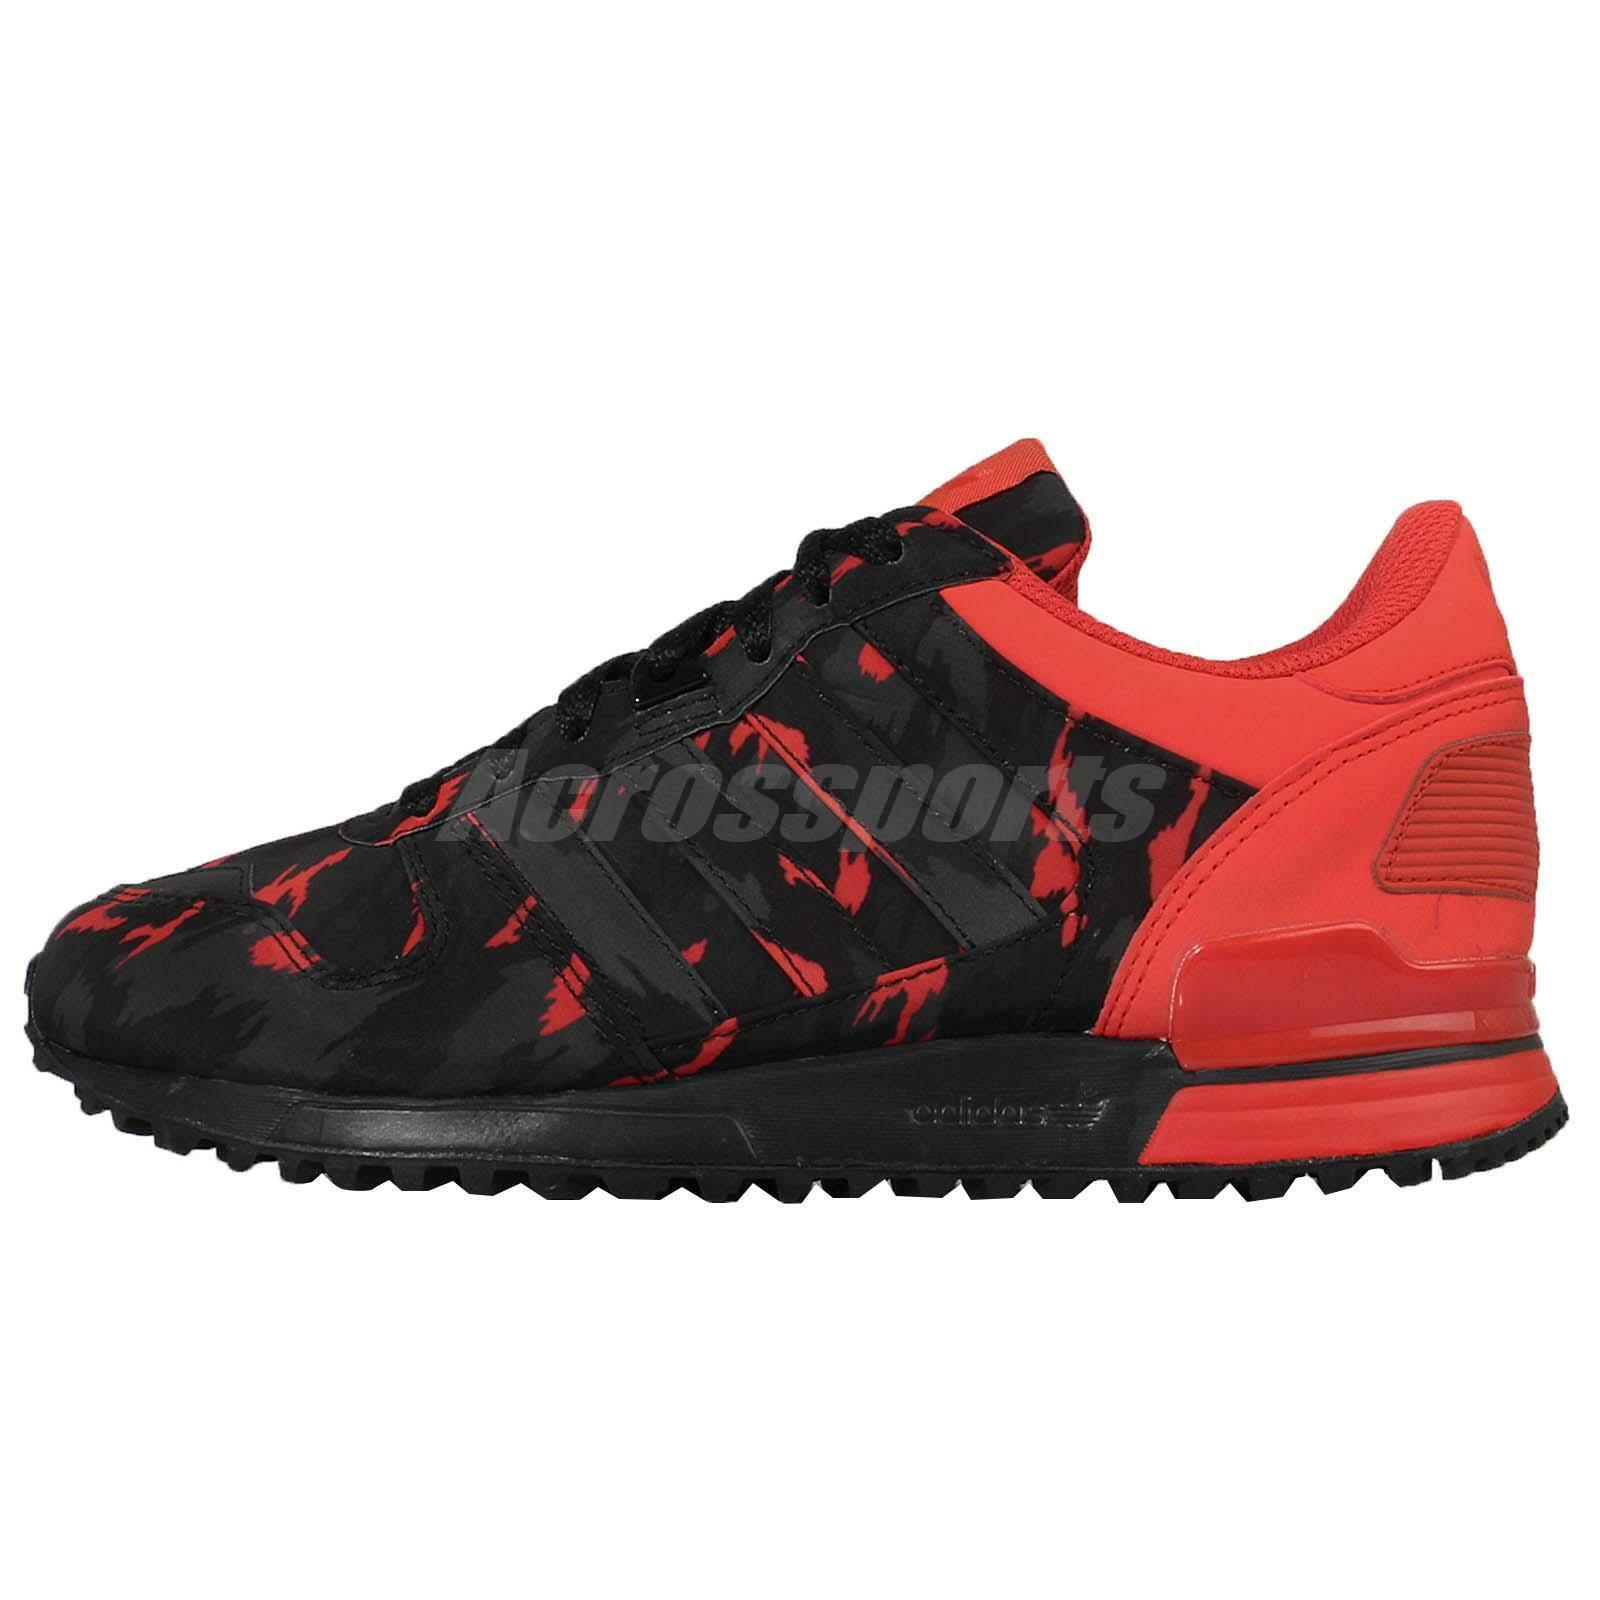 sports shoes 934c4 40235 delicate Adidas Originals ZX 700 Black Red Mens Running Shoes Sneakers  B24837